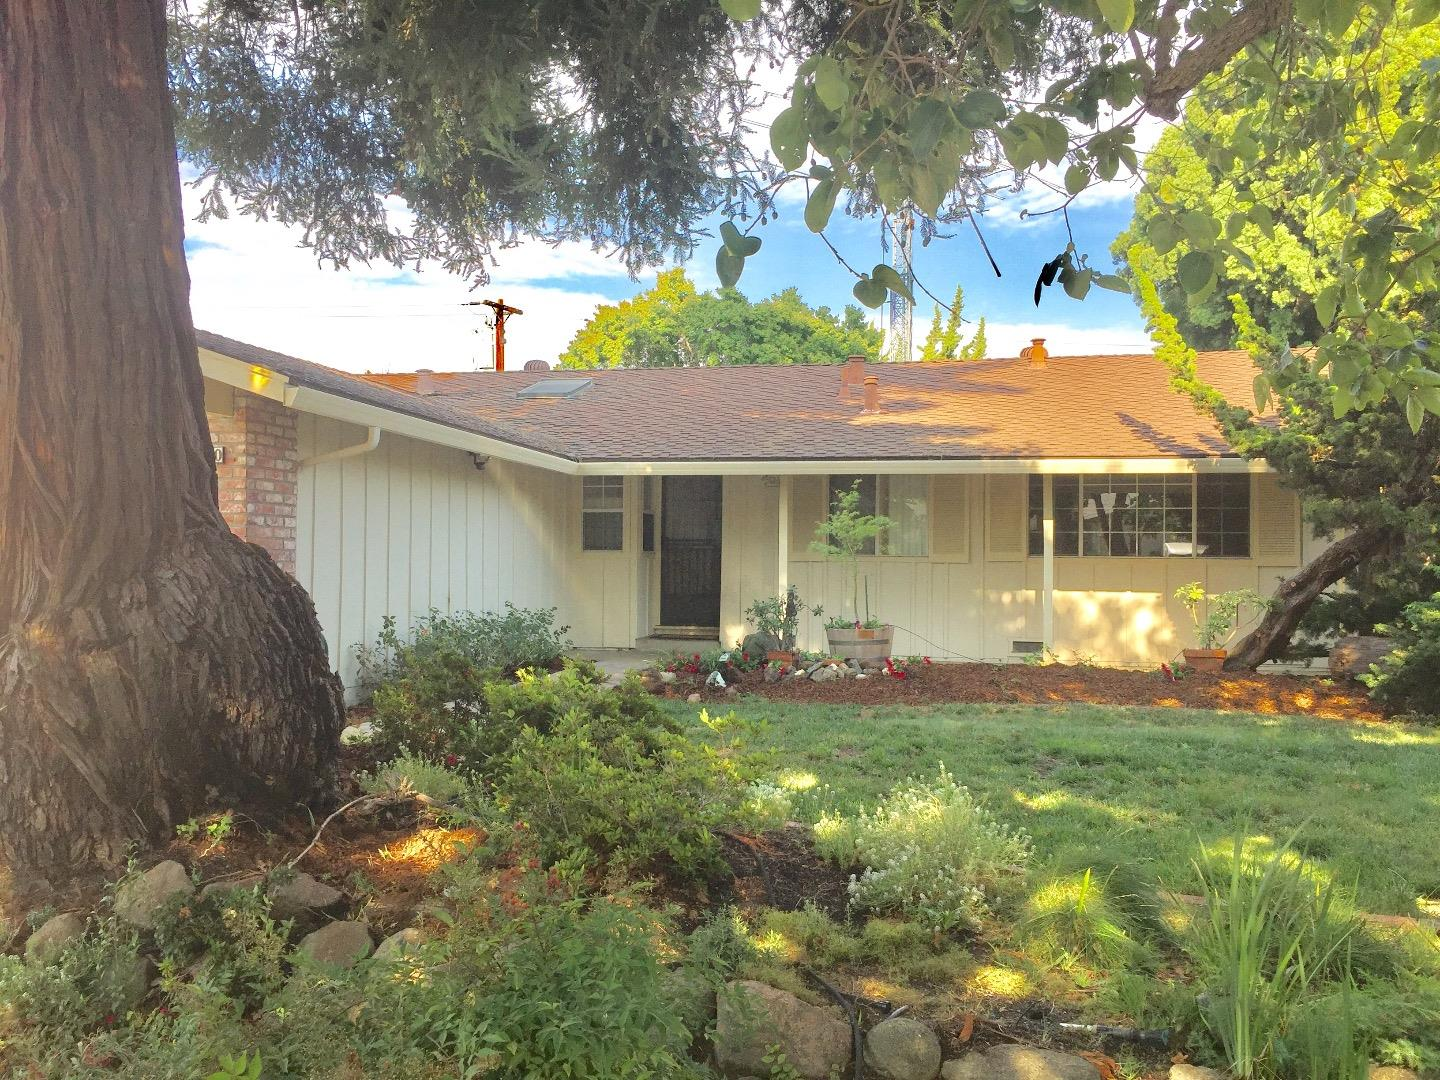 Single Family Home for Rent at 860 Mangrove Avenue Sunnyvale, California 94086 United States